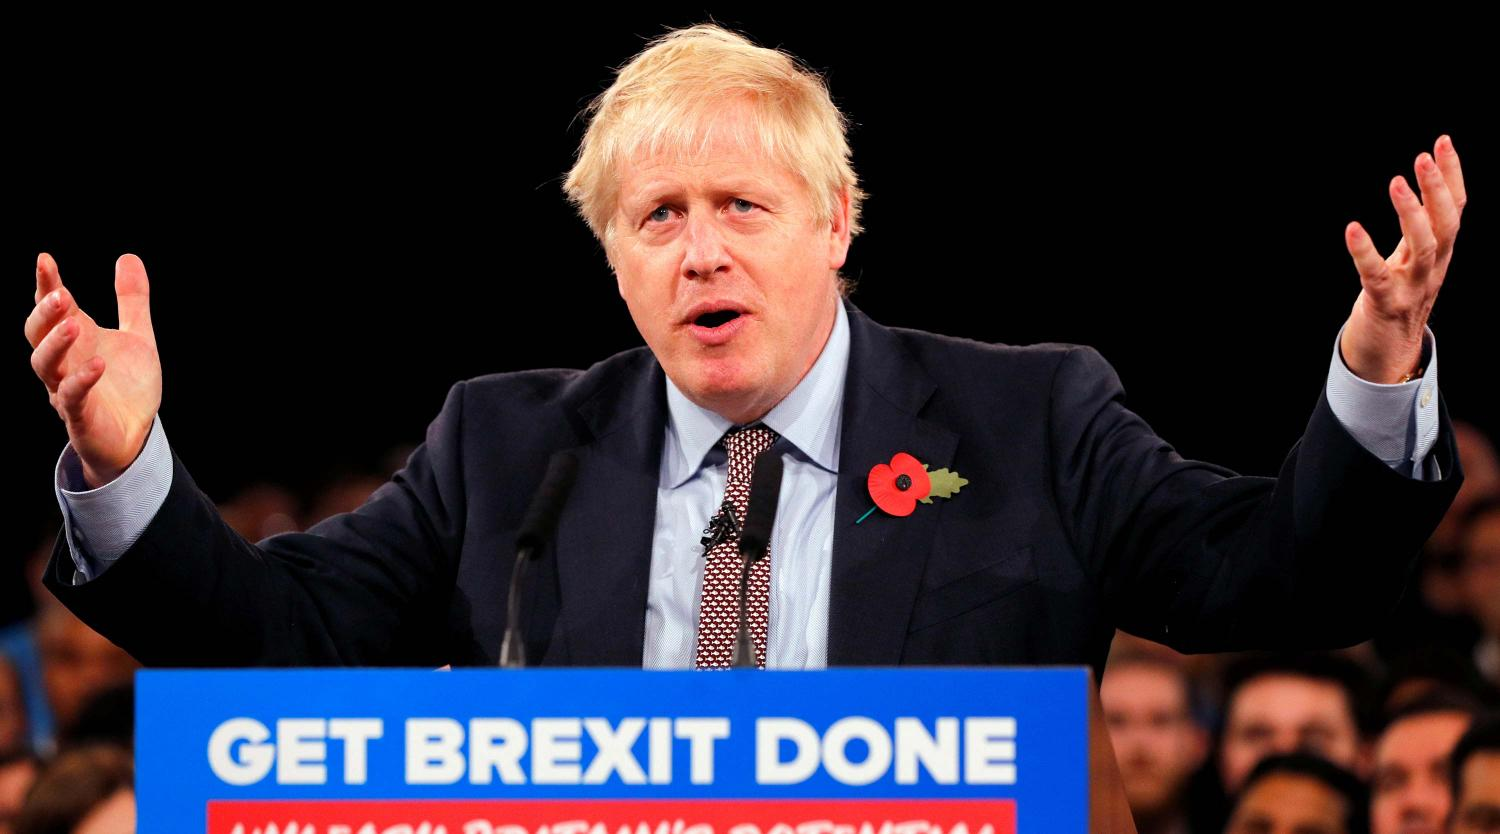 Britain's Prime Minister Boris Johnson speaks during an event launching the Conservative Party's general election campaign in Birmingham, Britain, November 6, 2019.